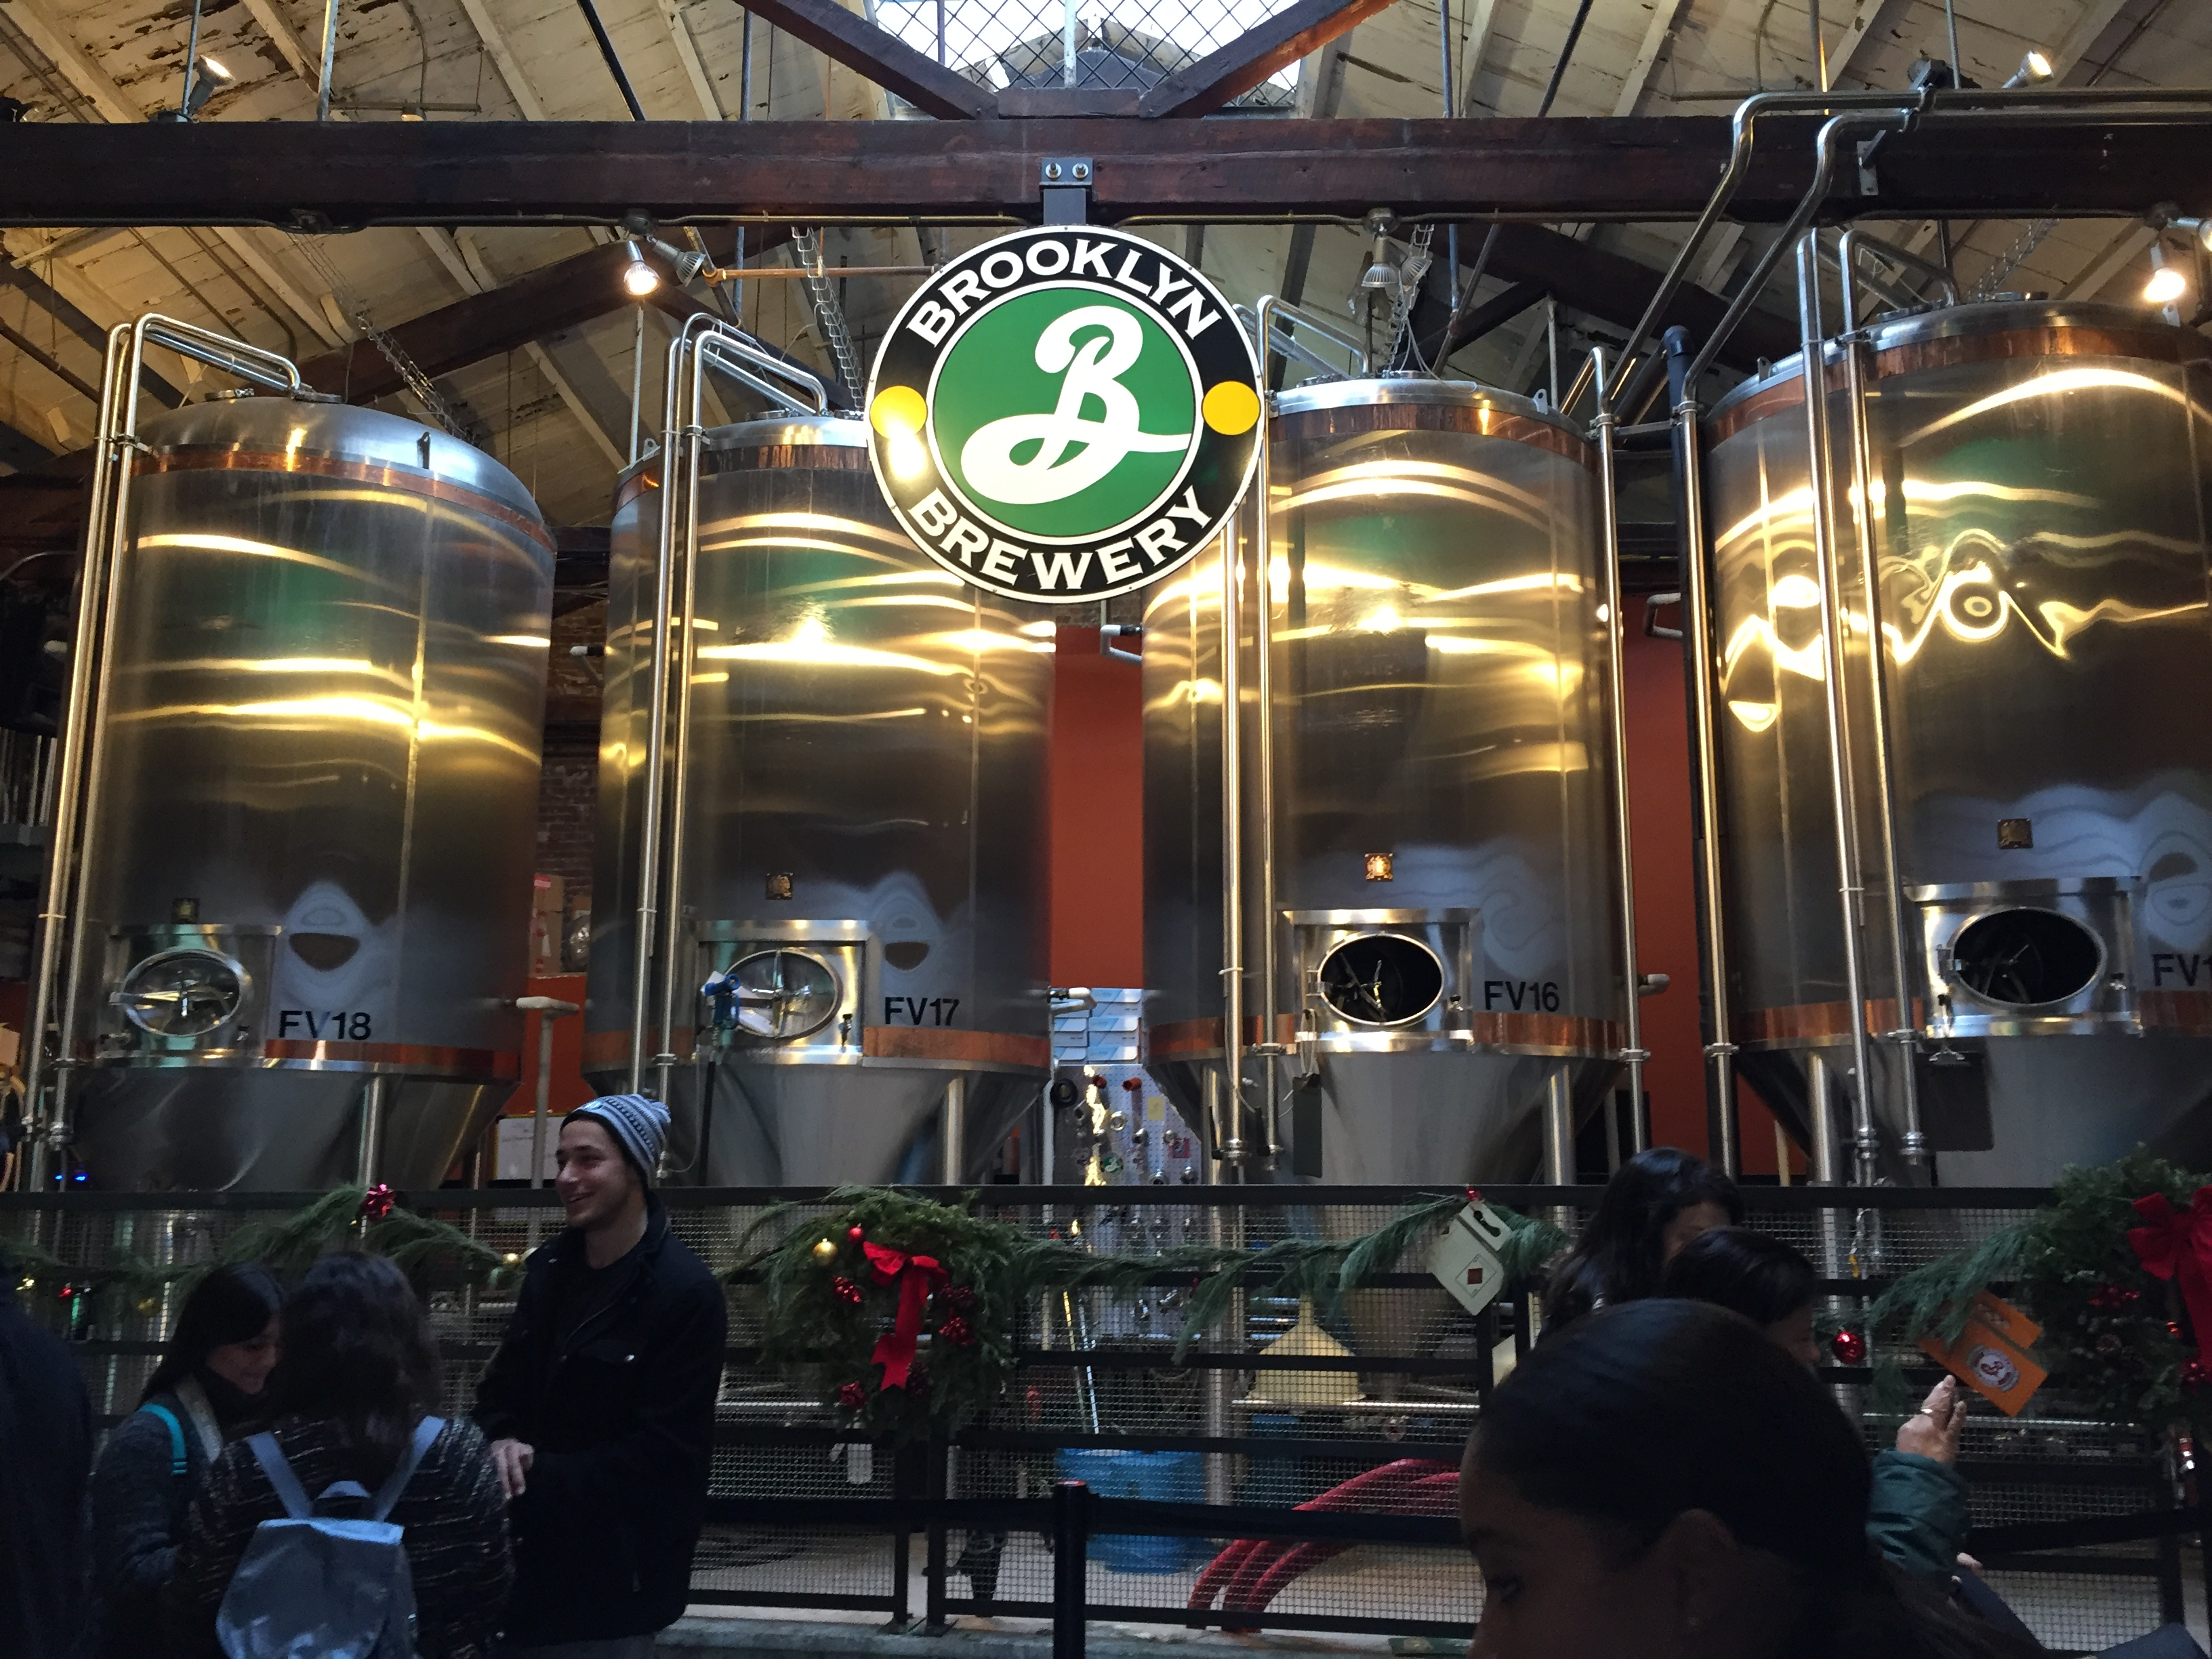 A brief post on how I became a Brooklyn Brewery convert